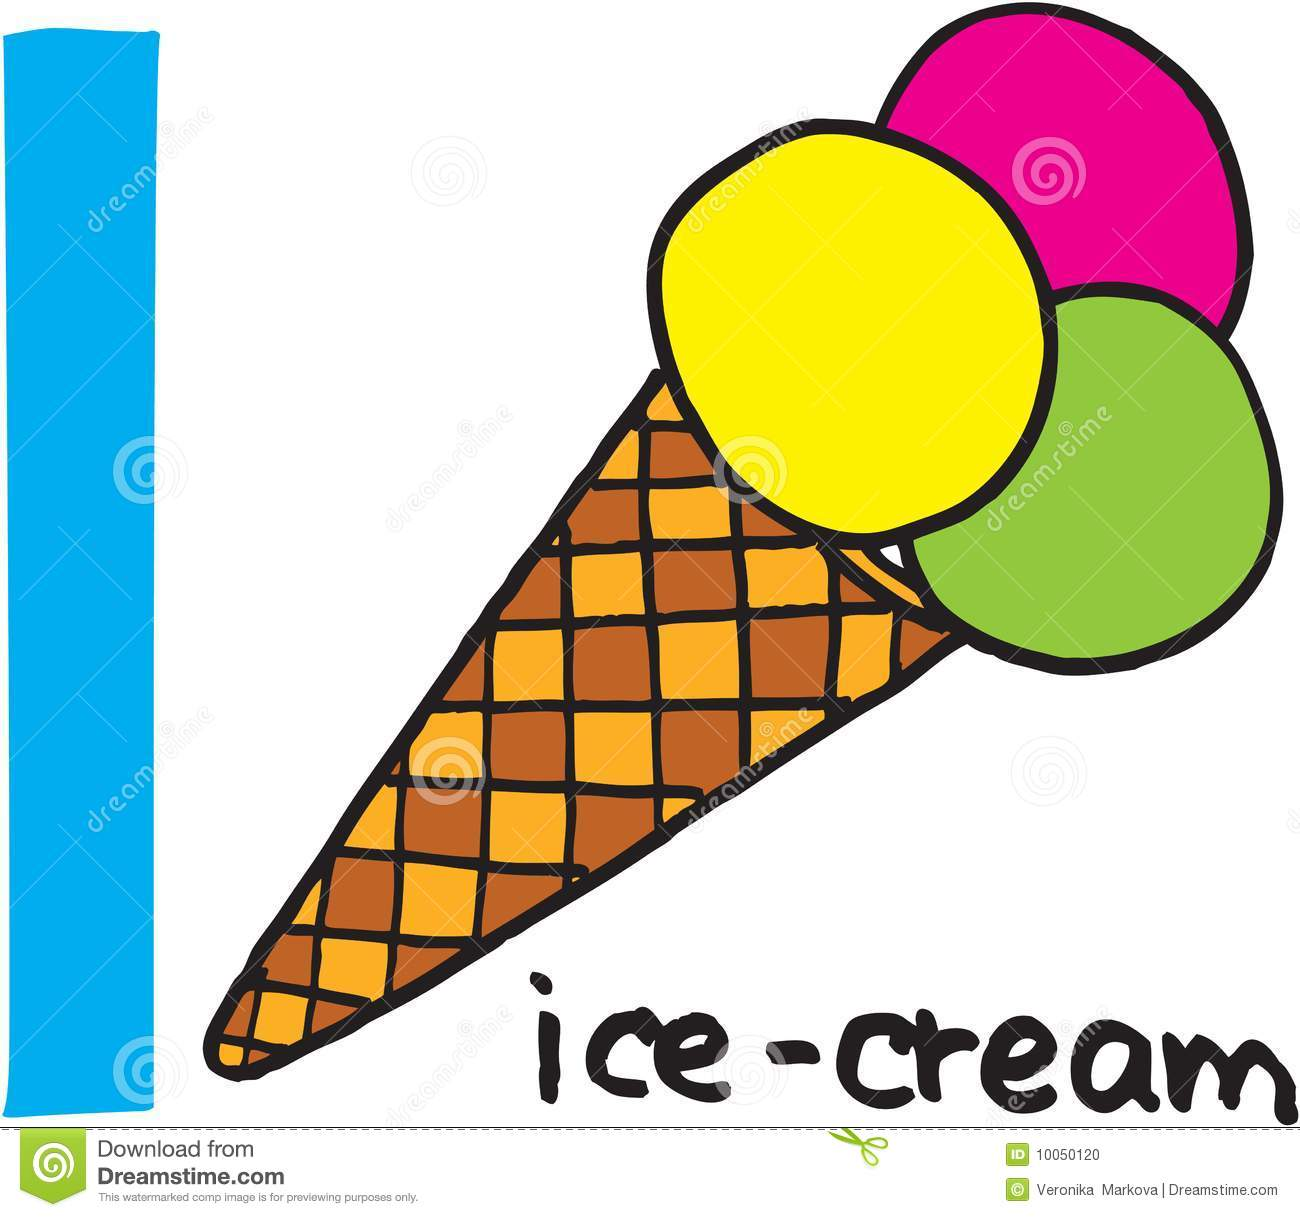 Letter I - icecream. vector image on white background.